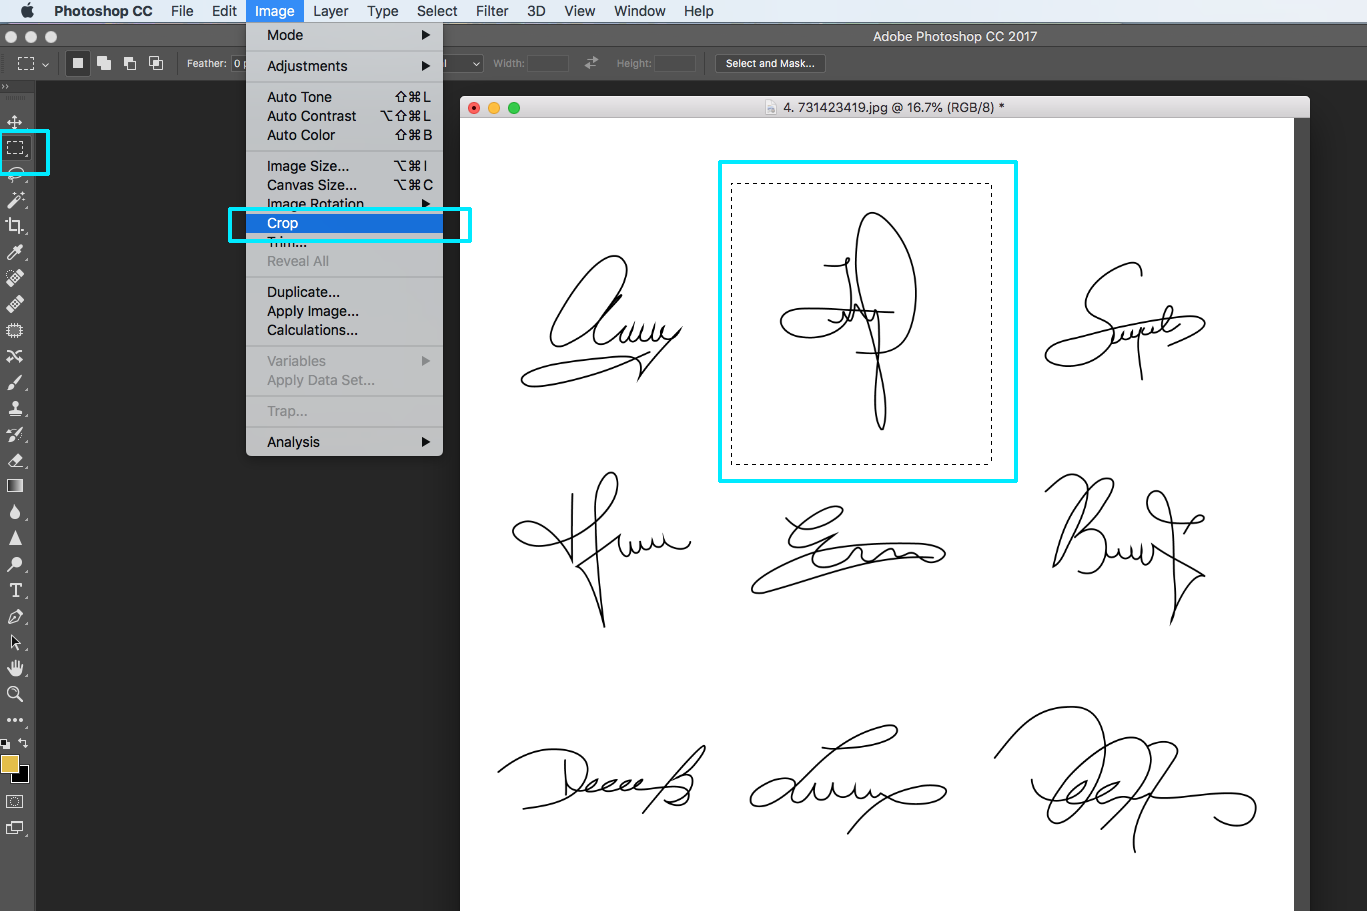 How to Create Logo and Watermark Signature in Adobe Photoshop.